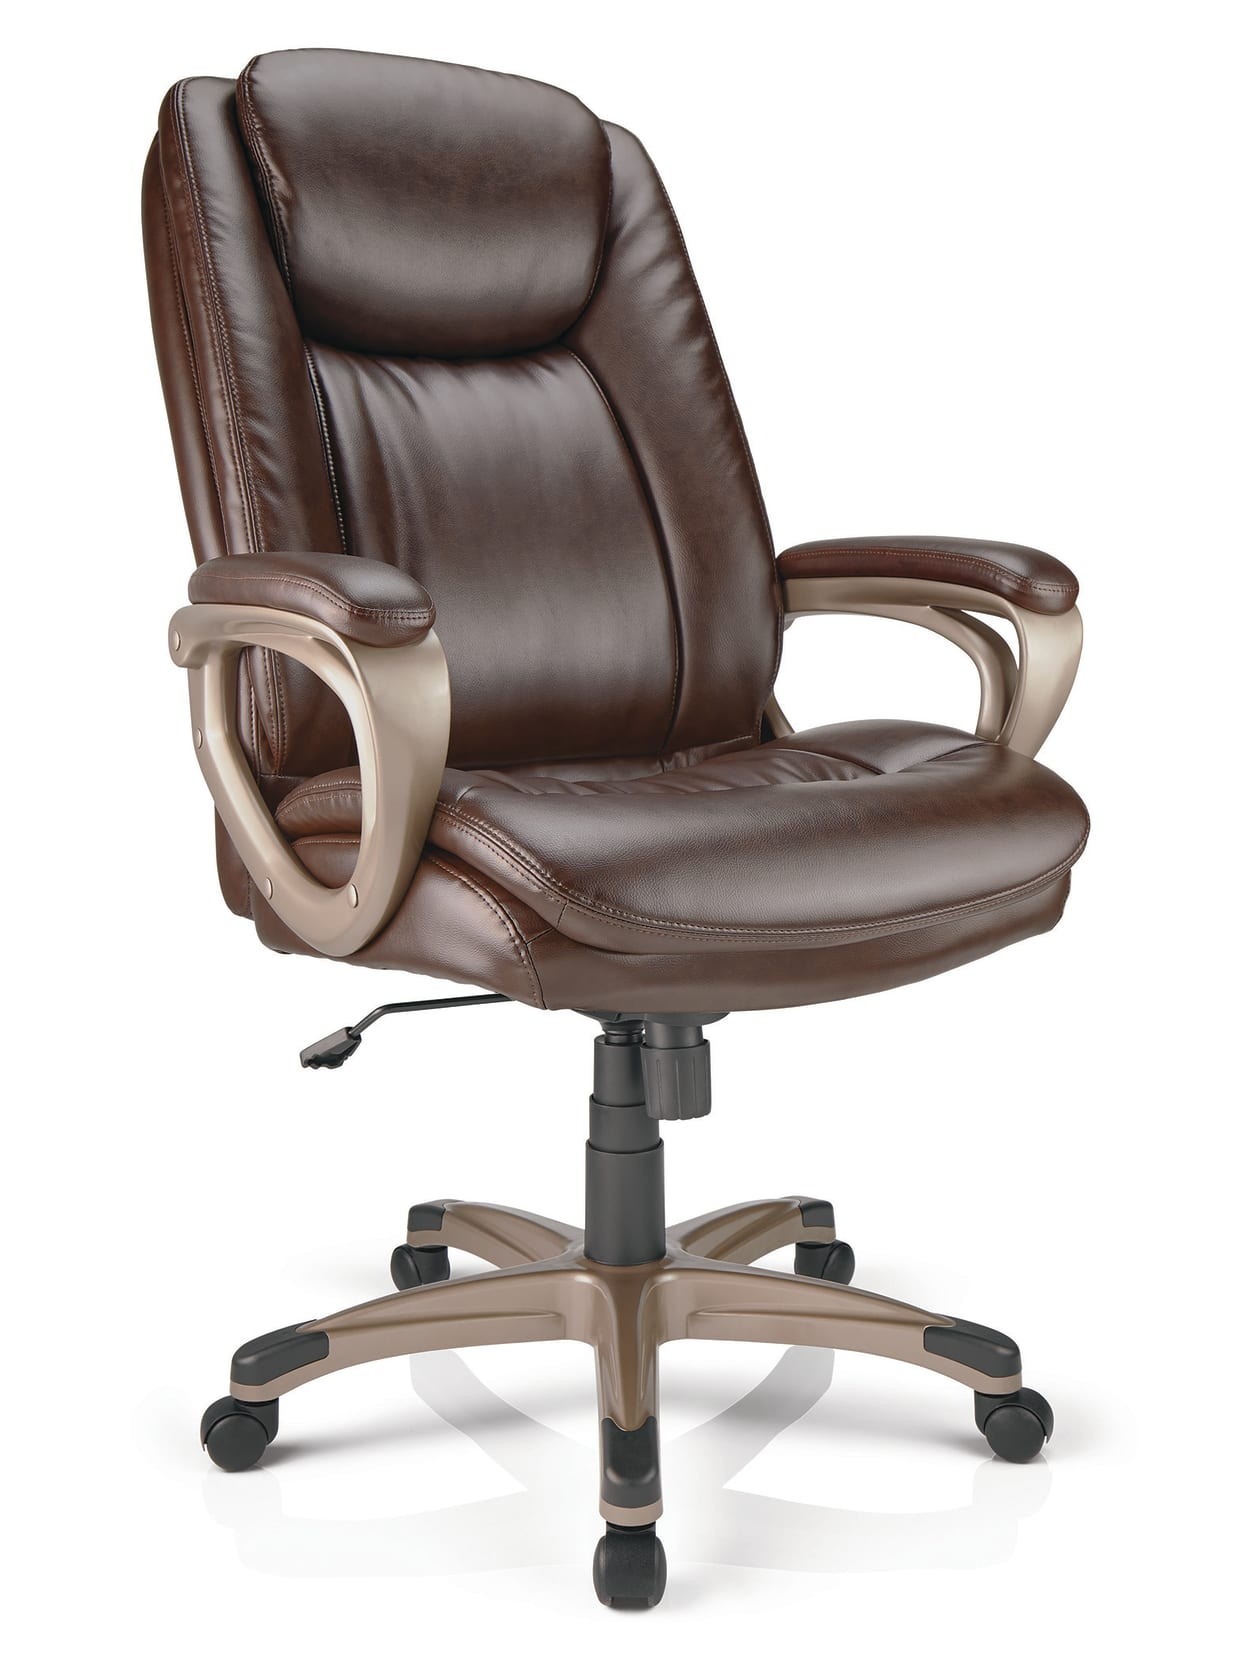 Realspace Tresswell Chair Brownchampagne Office Depot